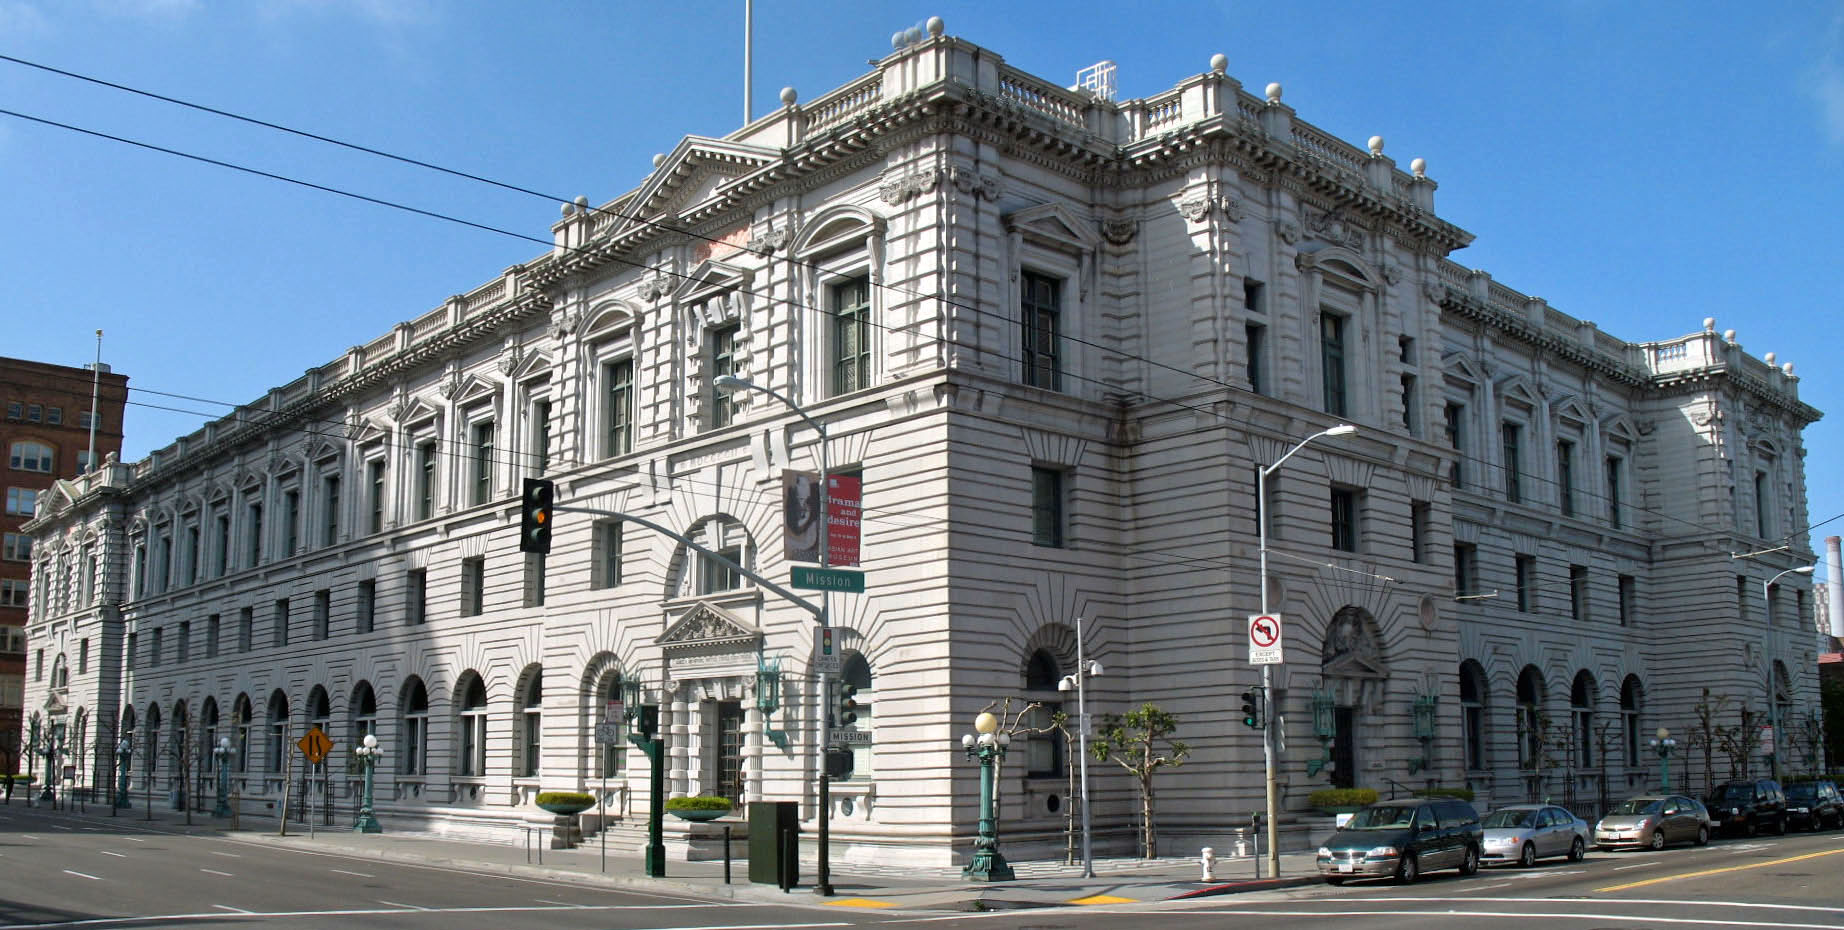 U_S__Post_Office__Courthouse_San_Francisco